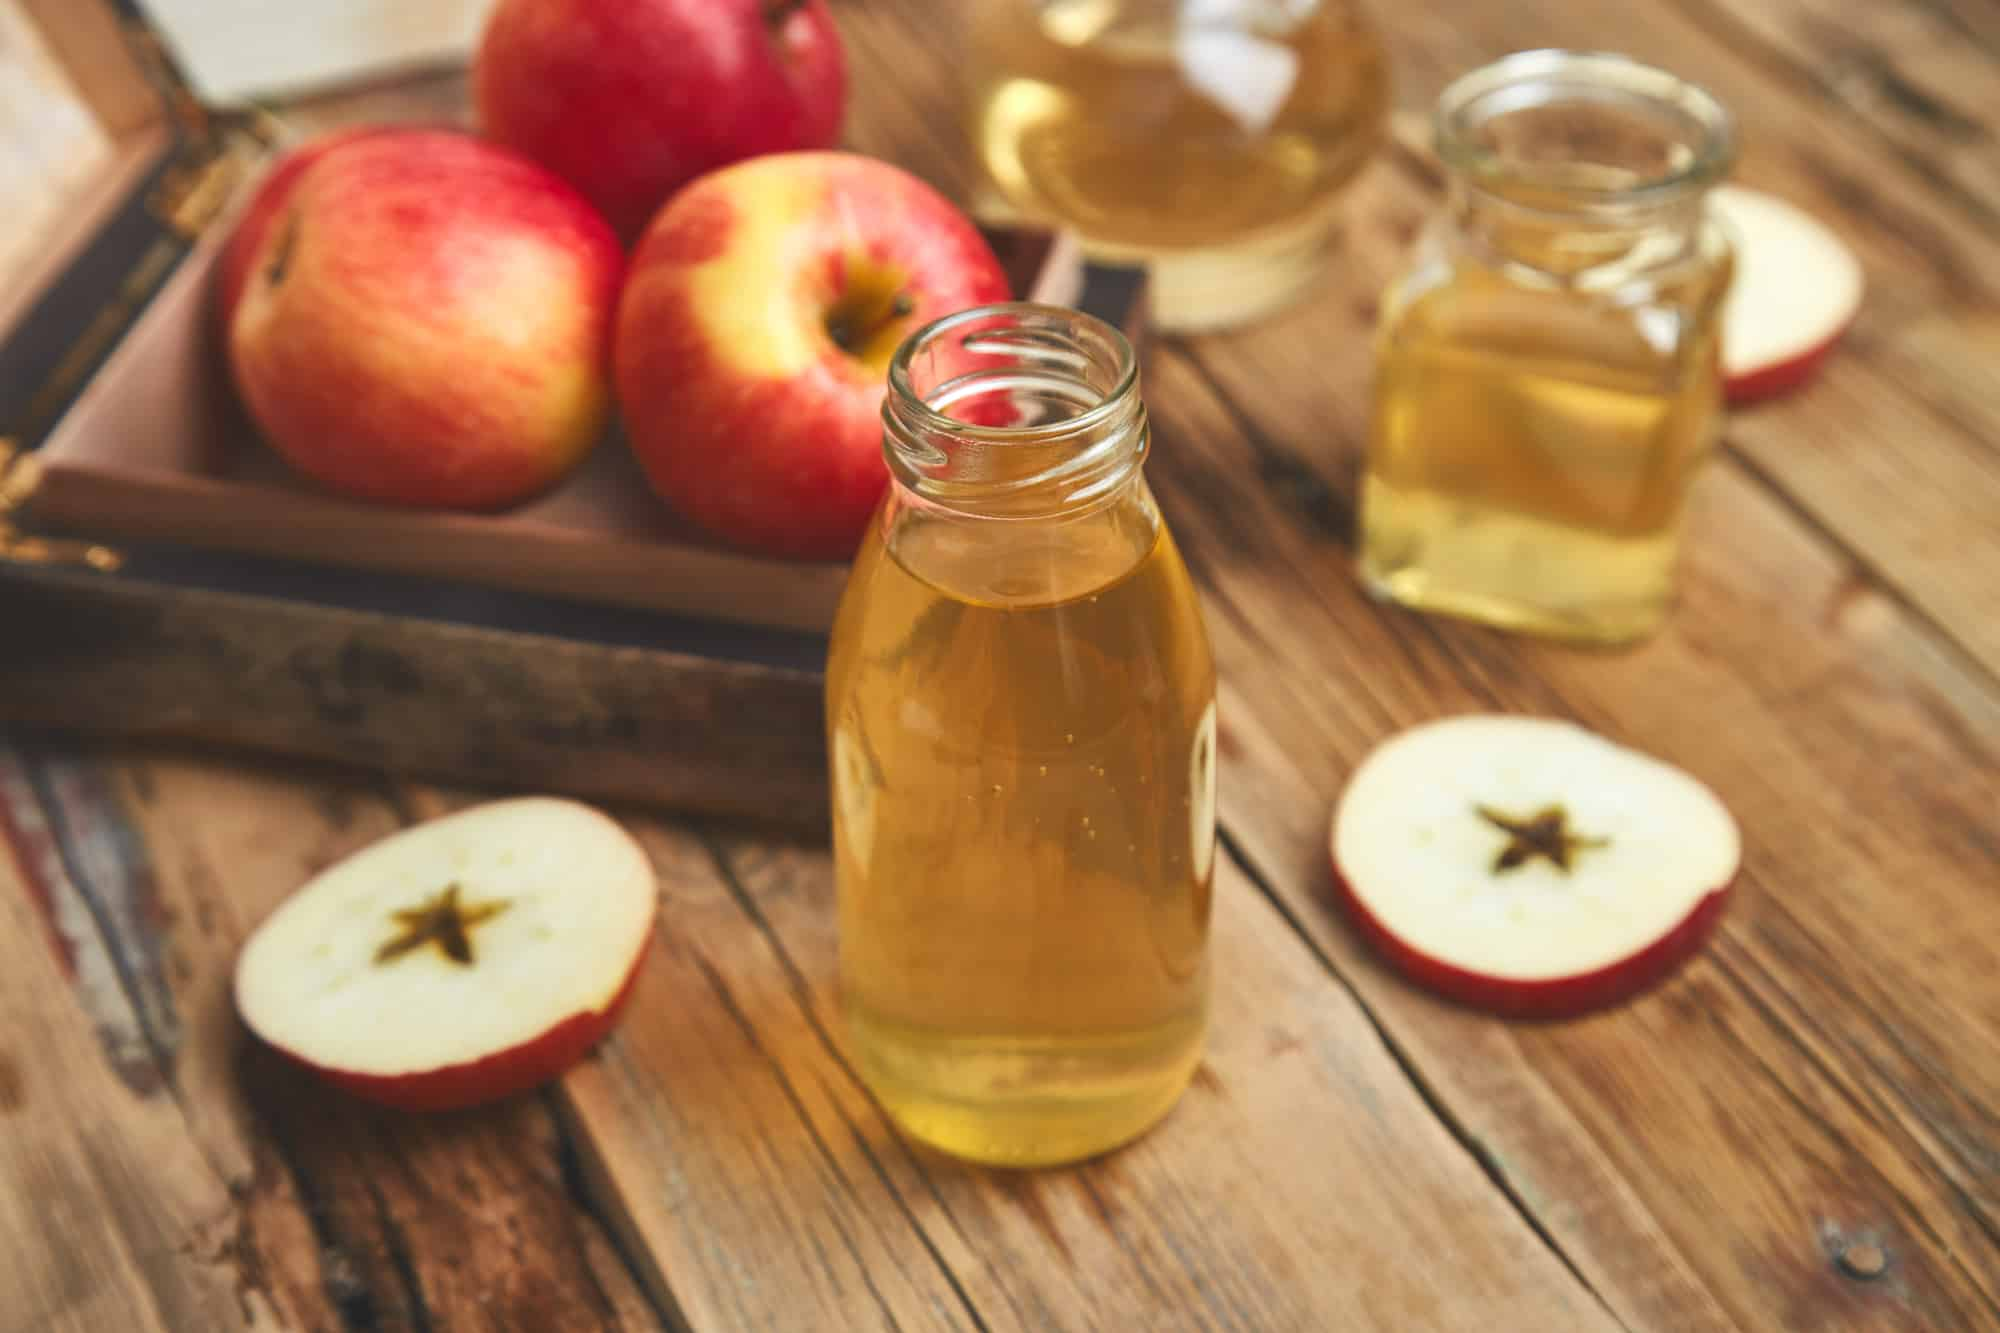 Apple cider vinegar. Glass Bottle of apple organic vinegar on wooden table. Healthy organic drink food. Bottle of fresh cider near autumn red apples. Rustic background